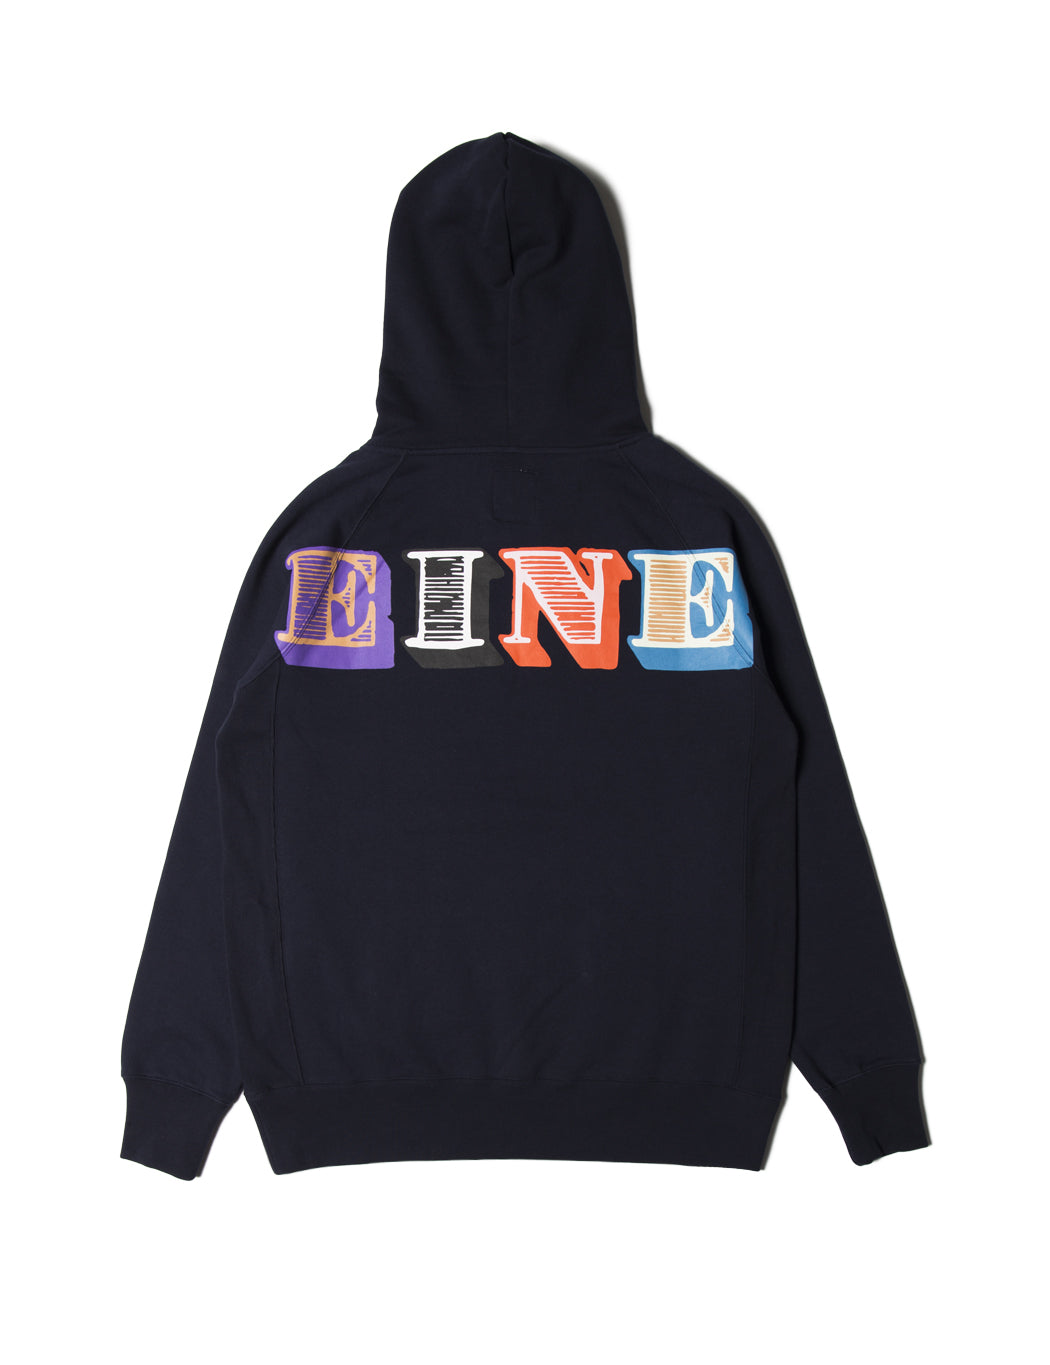 Eine Type Hooded Sweat - Navy - Eine London by Ben Eine